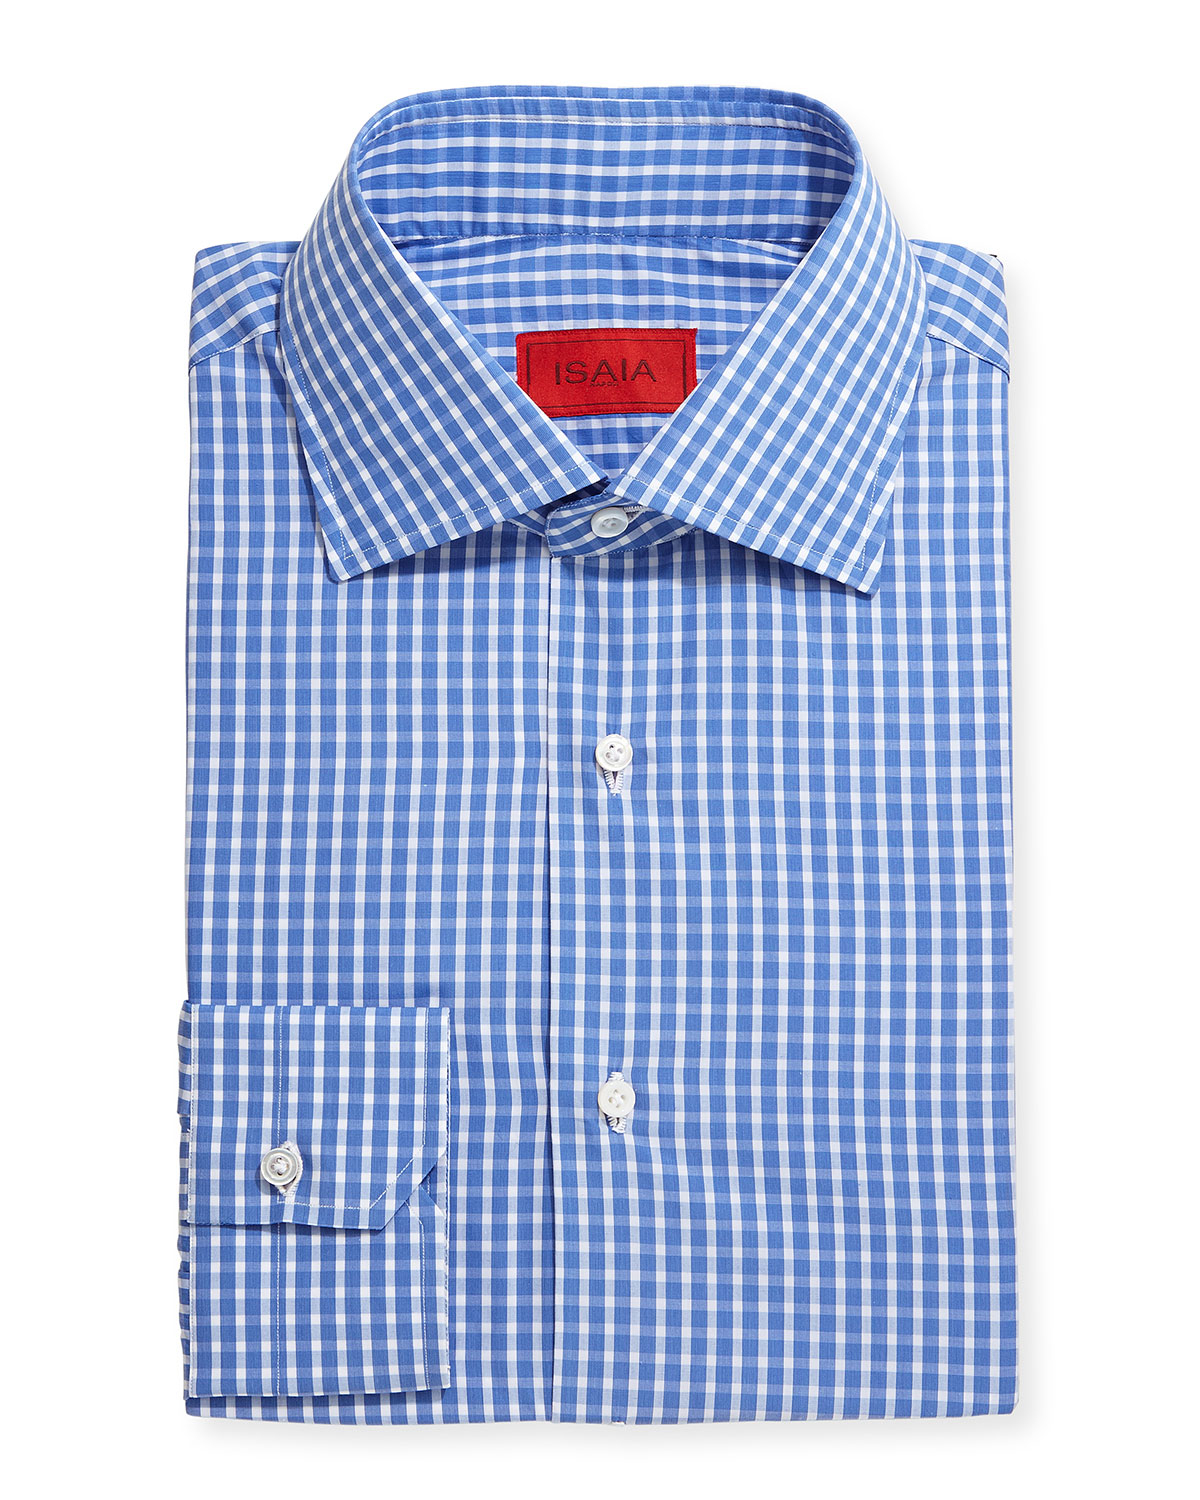 Isaia woven check dress shirt in blue for men lyst for Blue check dress shirt